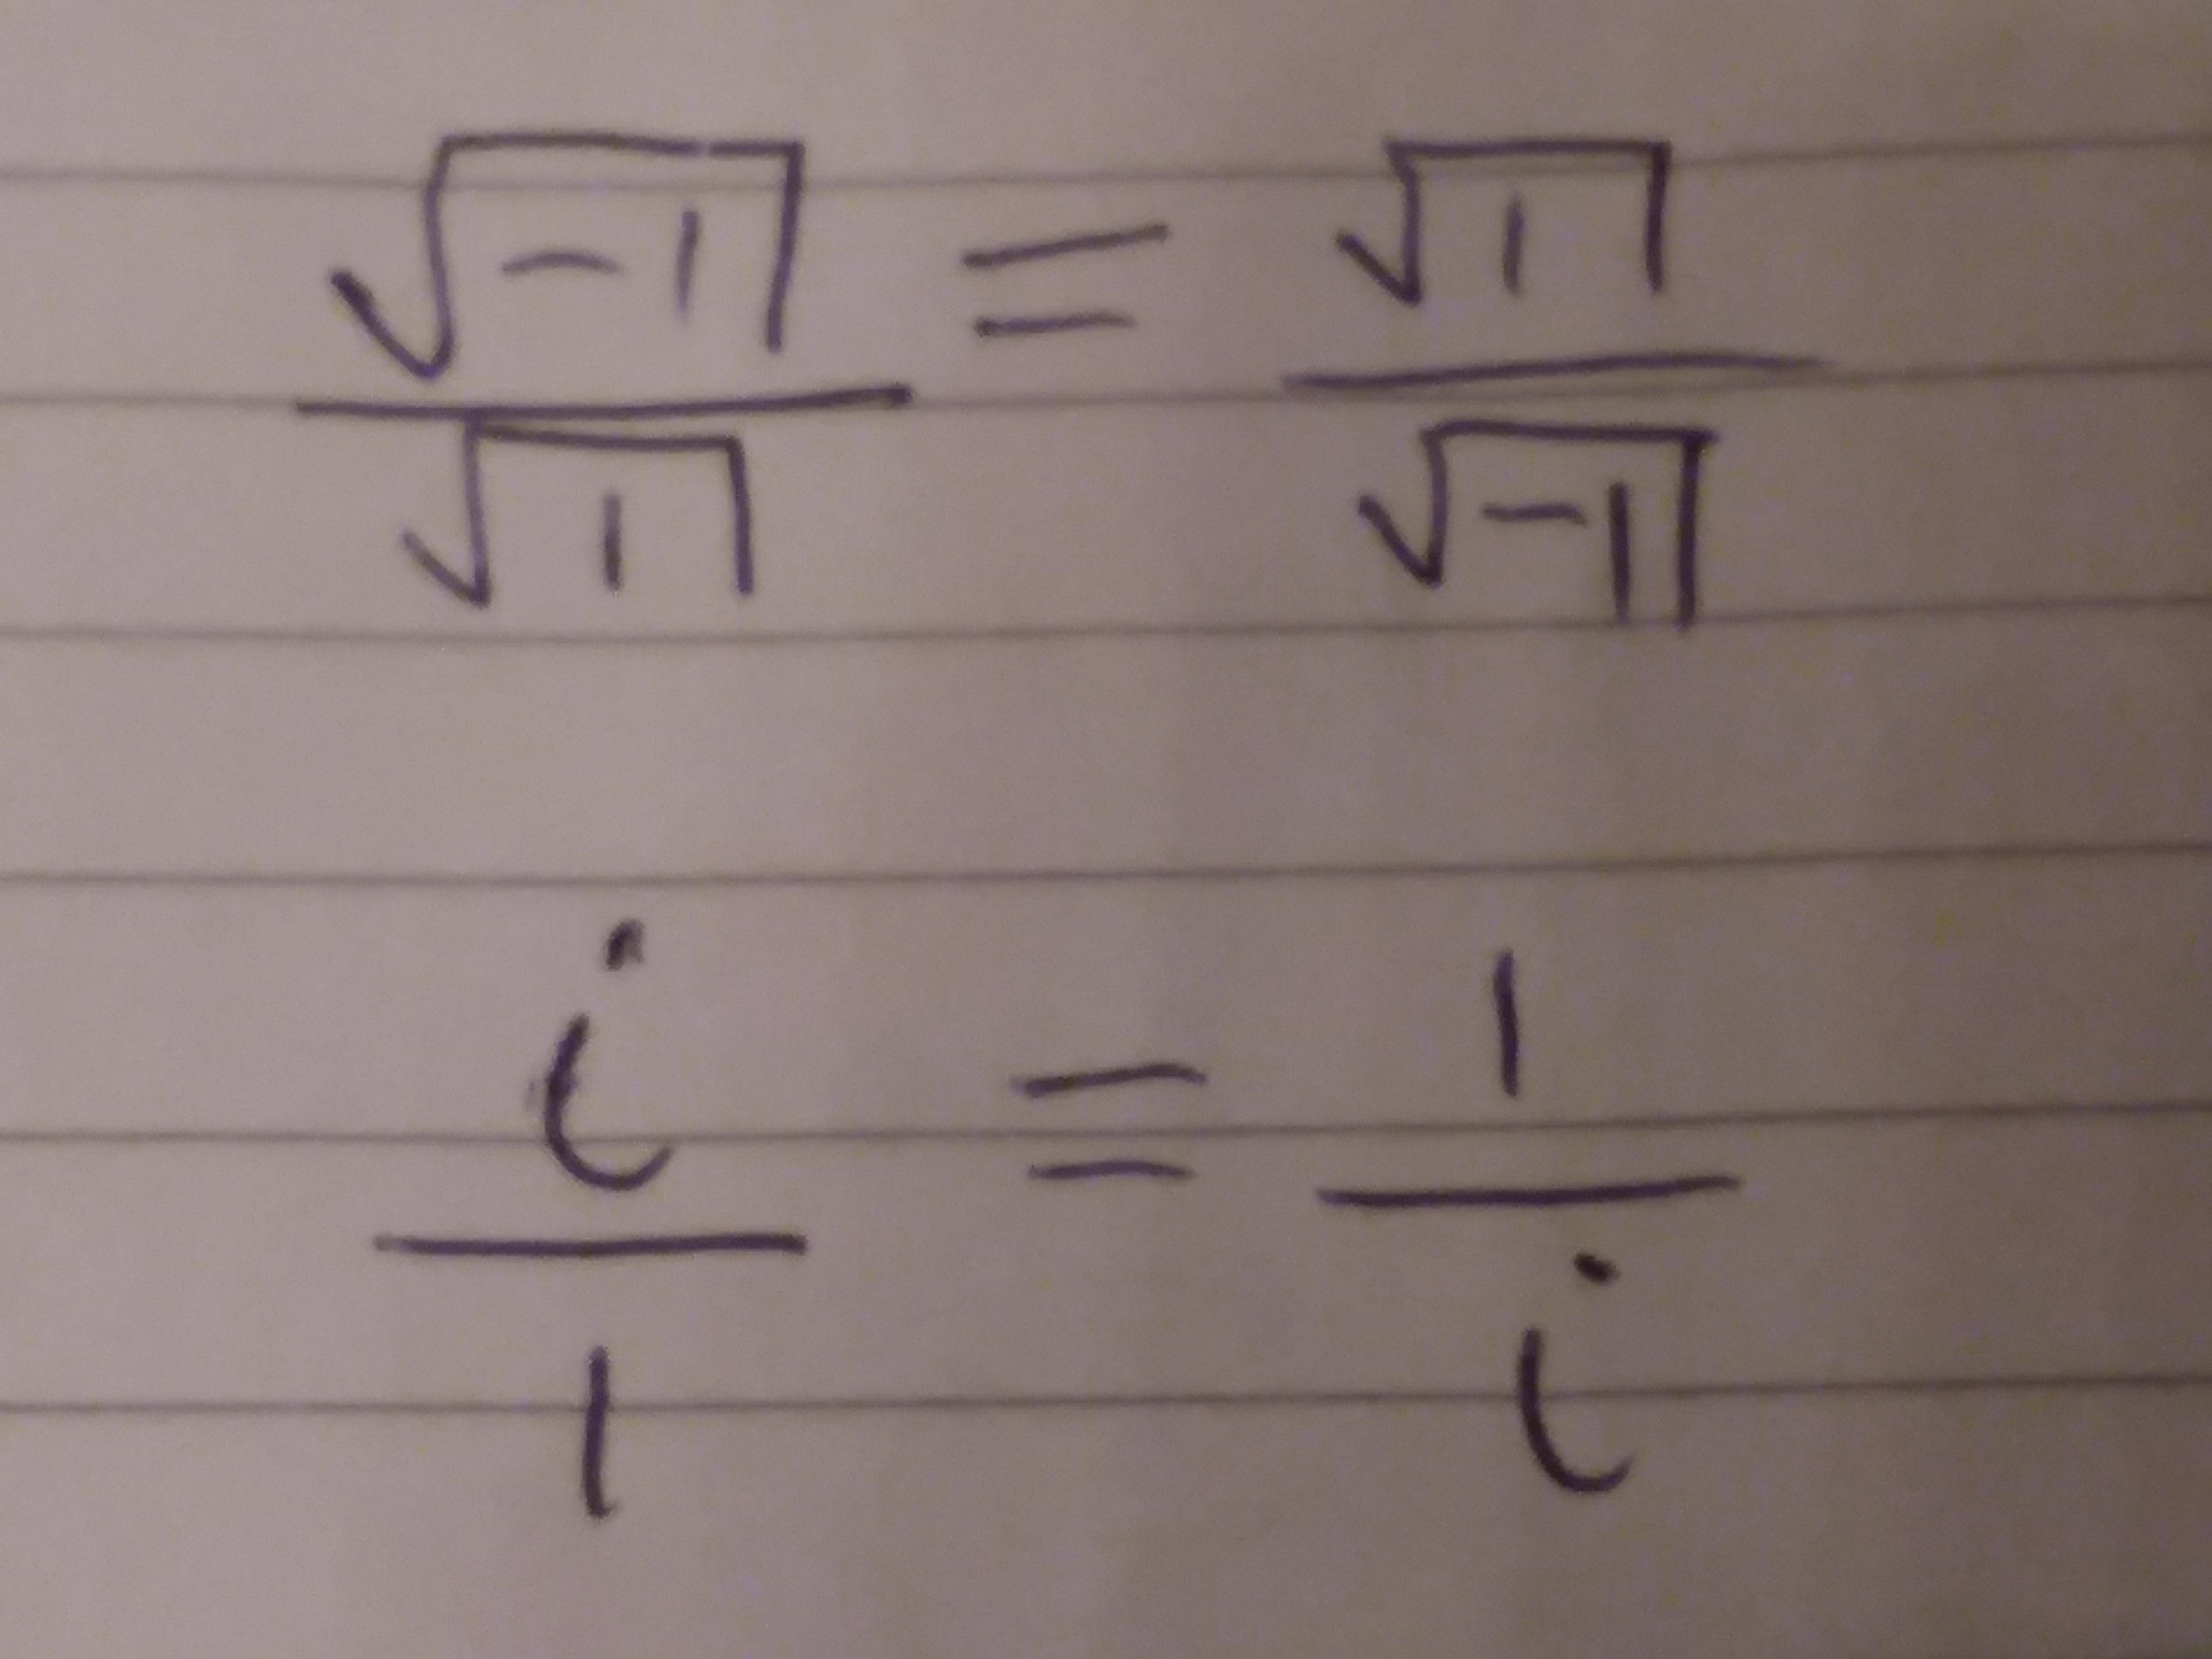 By definition the square root of -1 is i and the square root of 1 is 1.